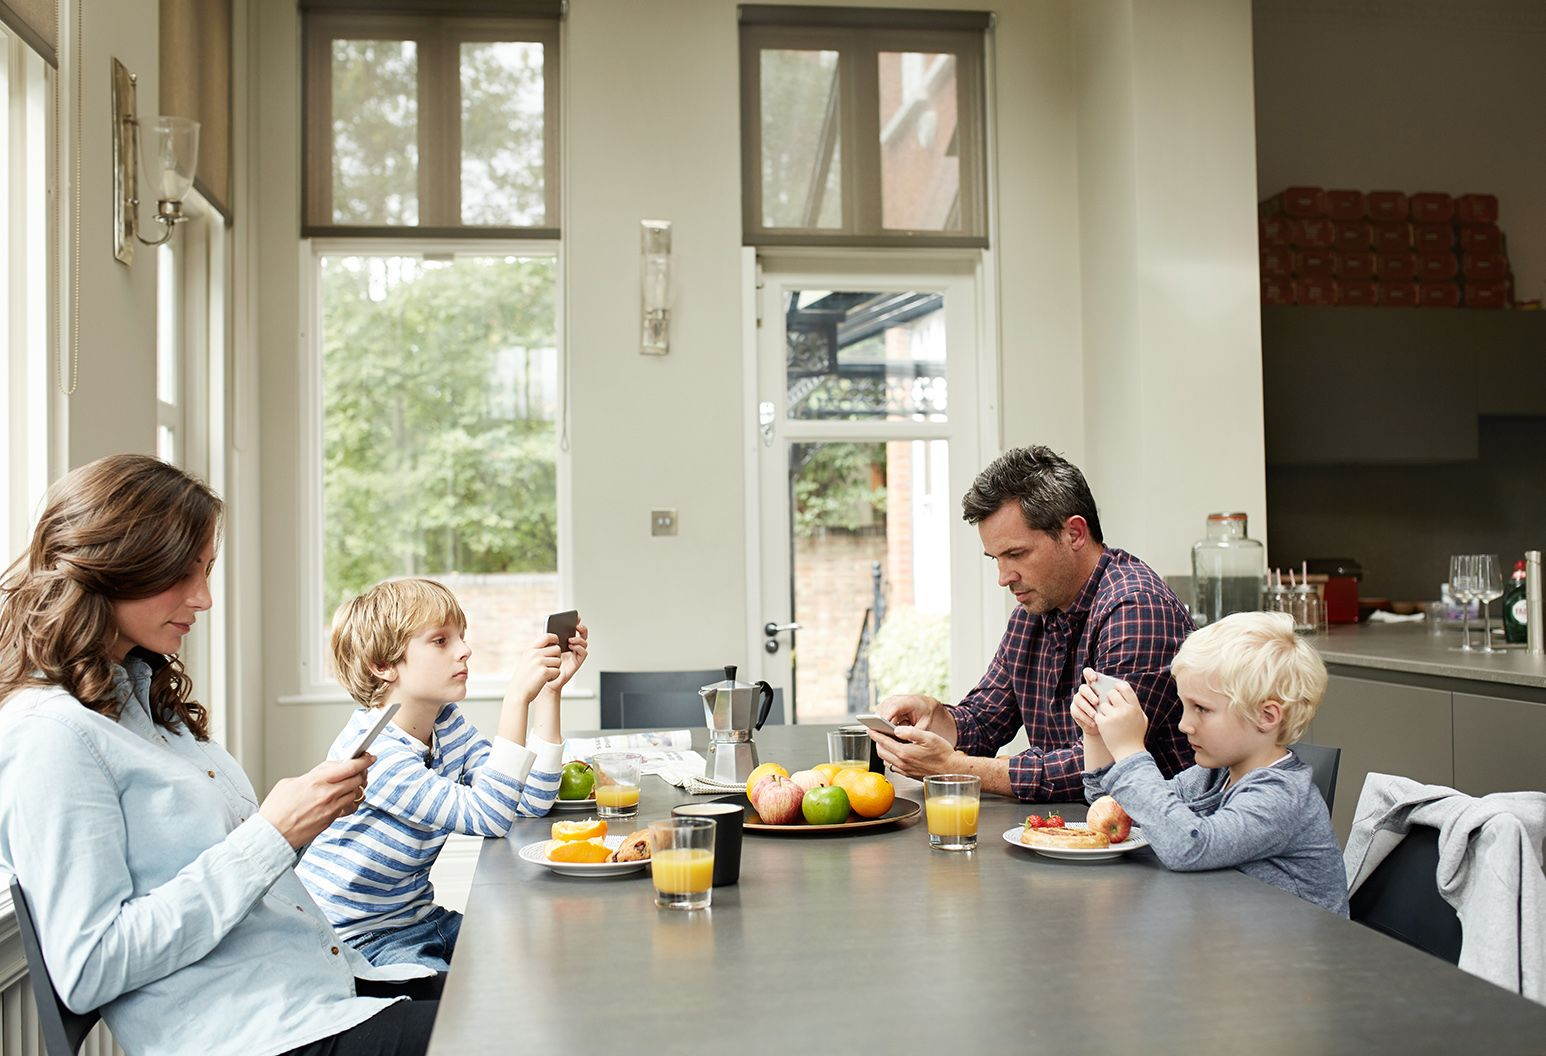 A mother, father and two little boys, ages 6 and 8, sit around a kitchen table. They are all on their cell phones. They each have a plate of food in front of them but they do not eat.